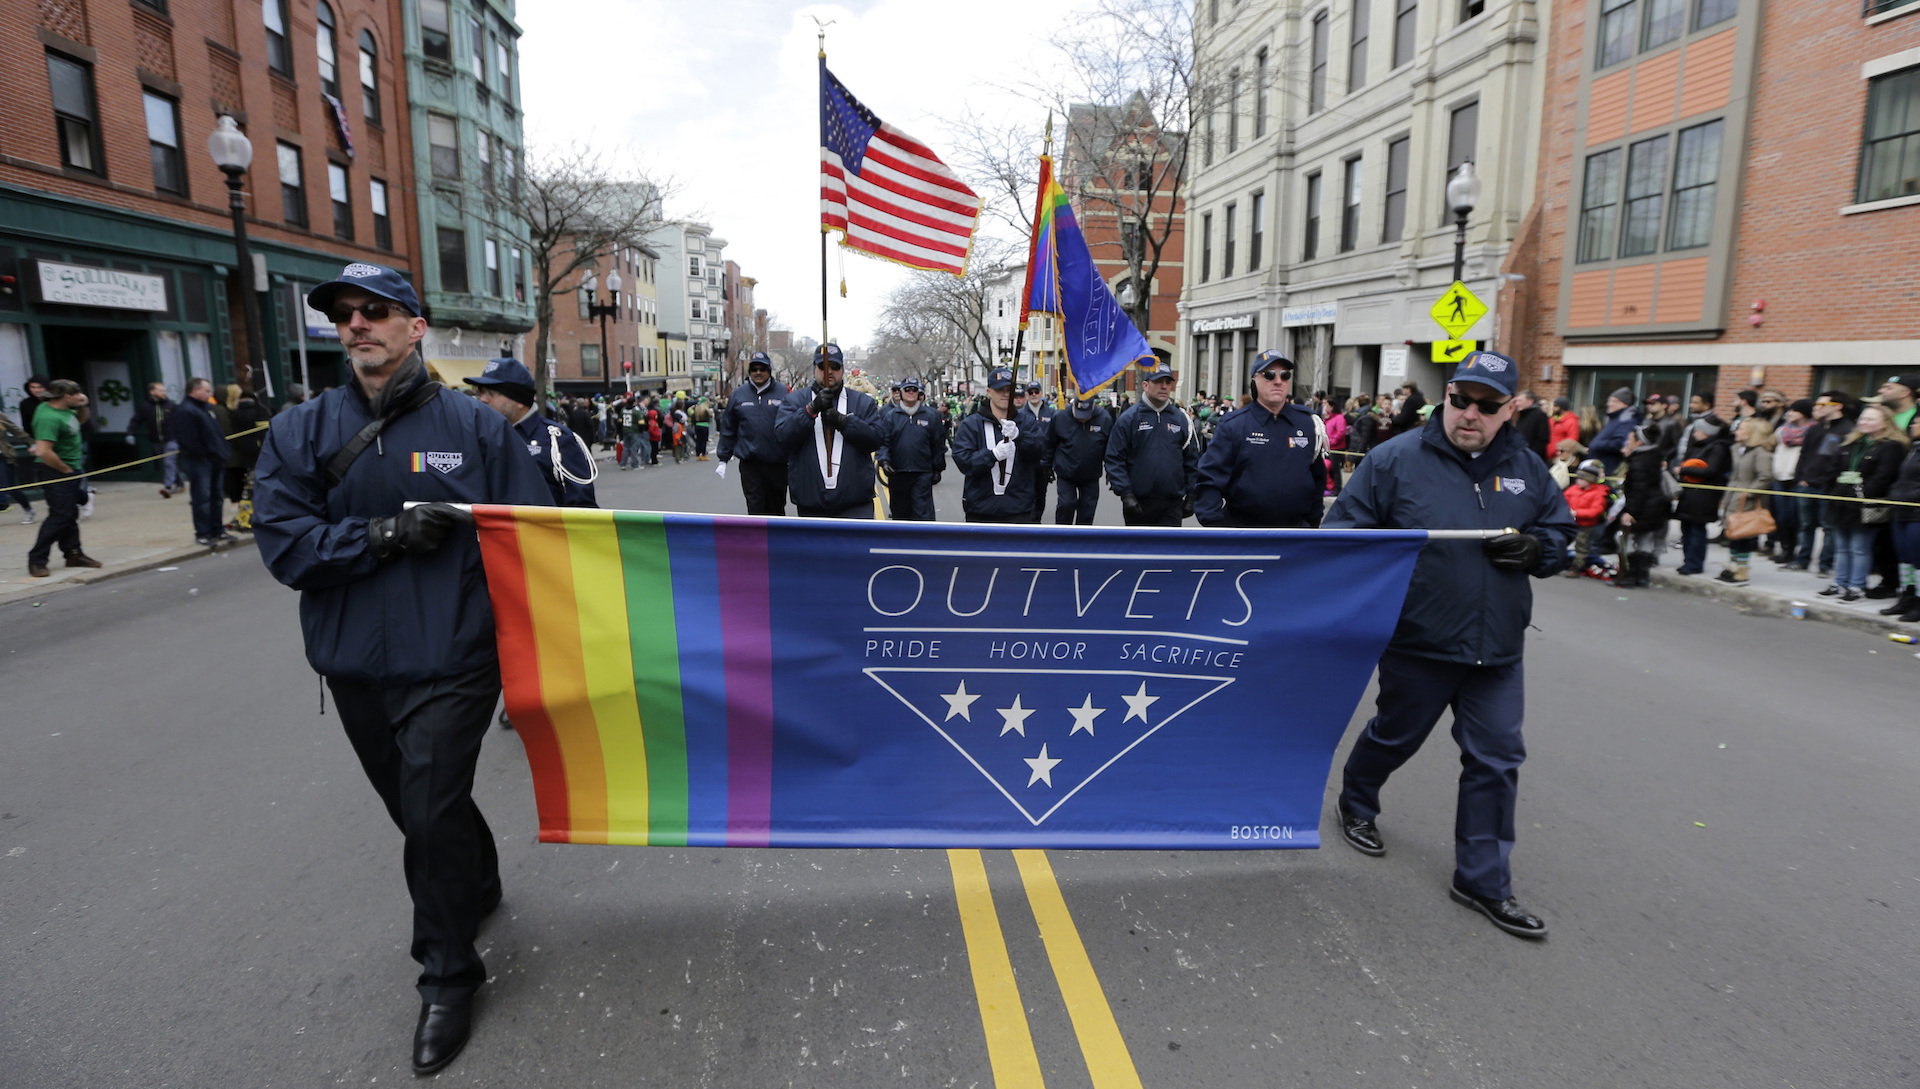 Backlash, boycott threats in Boston after gay vets banned from St. Patrick's Day parade